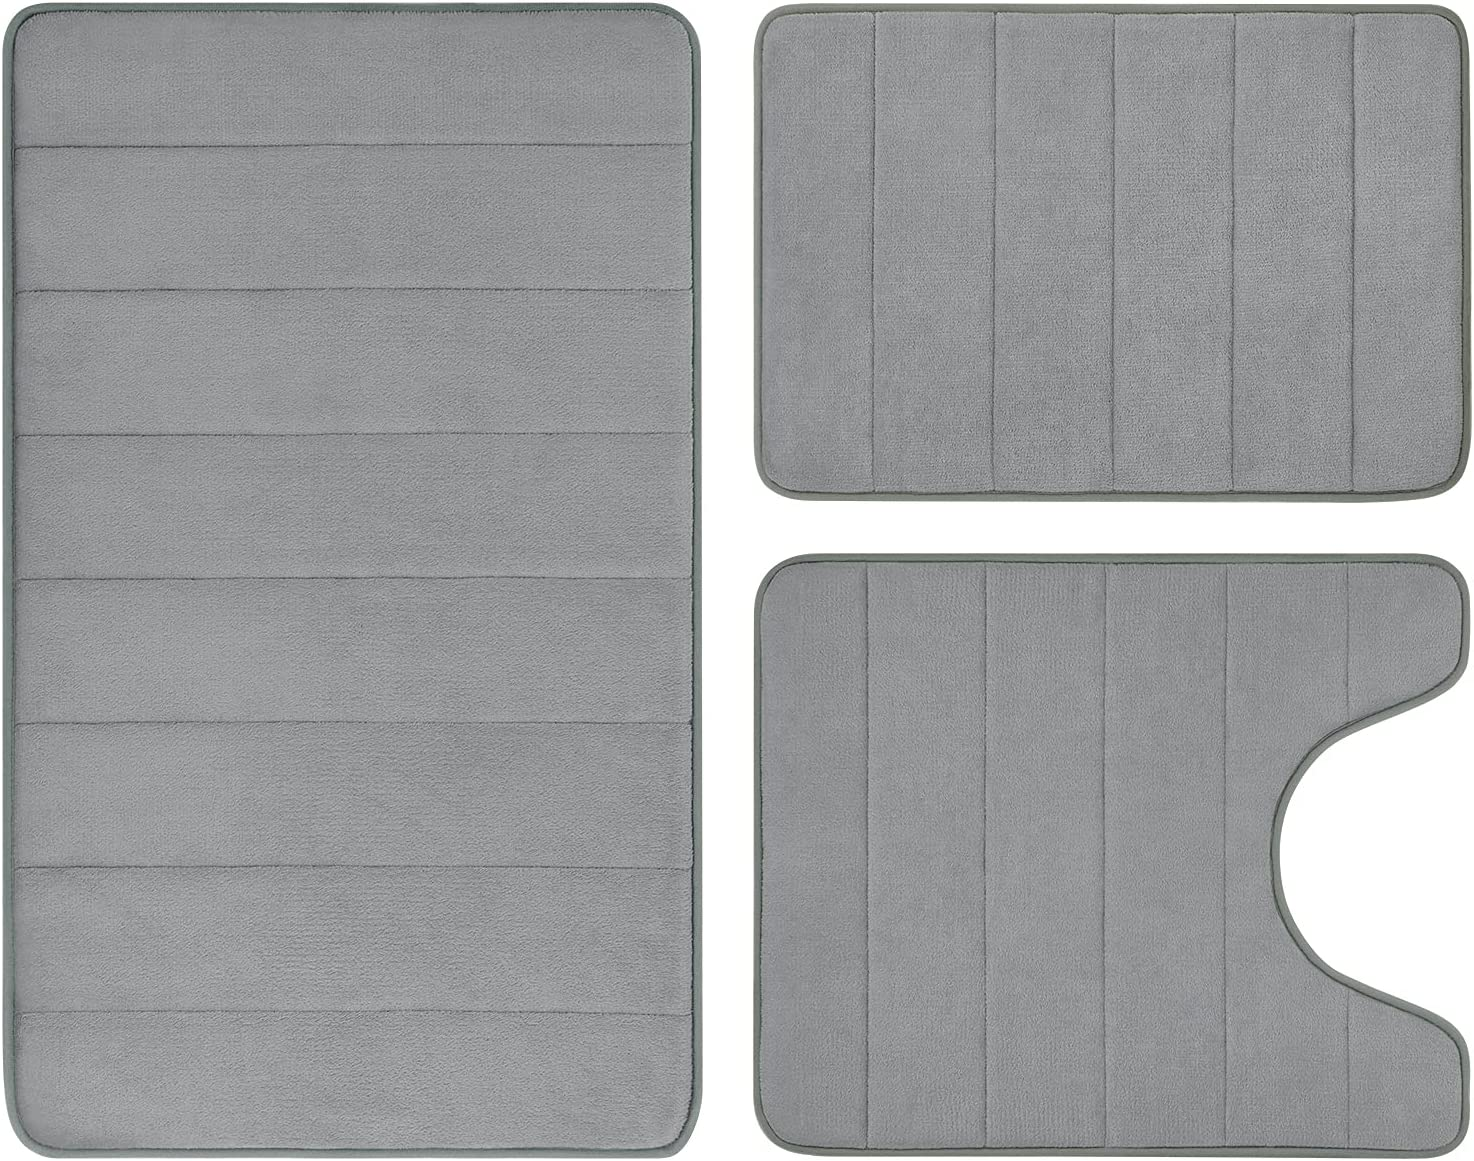 BYSURE Grey Memory Foam Bathroom Rug Piece Non Slip Set At the price of surprise 3 Outstanding Extra